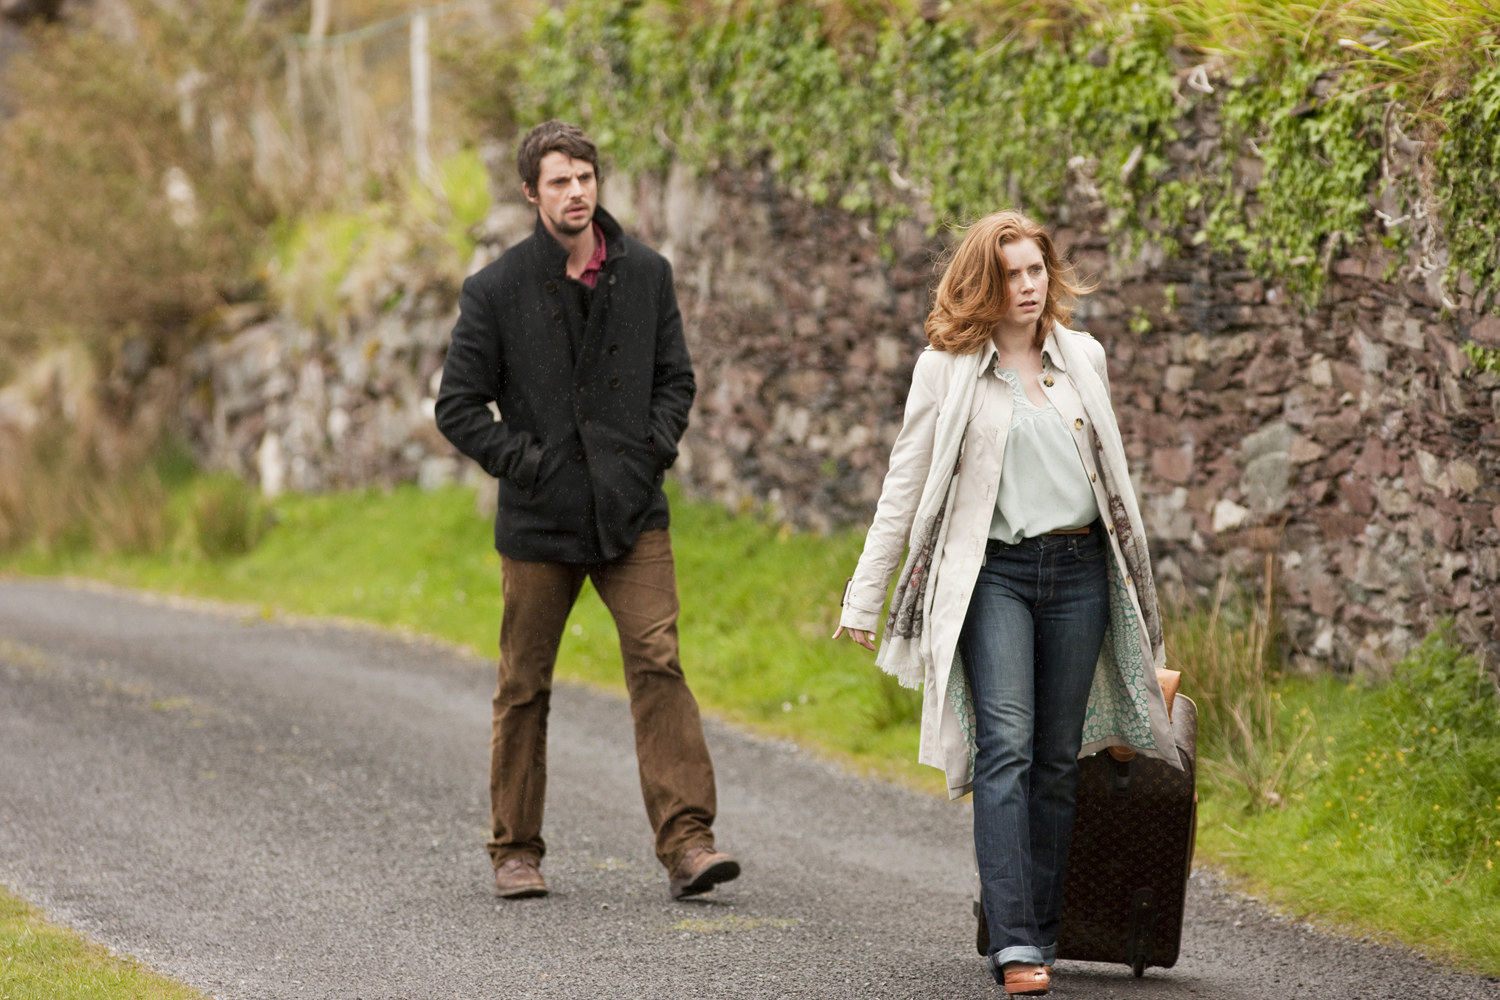 Leap Year  - The premise:  Anna lives in Ireland, has a good life with her boyfriend Jeremy, and is dying to get married. Because things are going nowhere, she decides to take the initiative and ask him to get married.